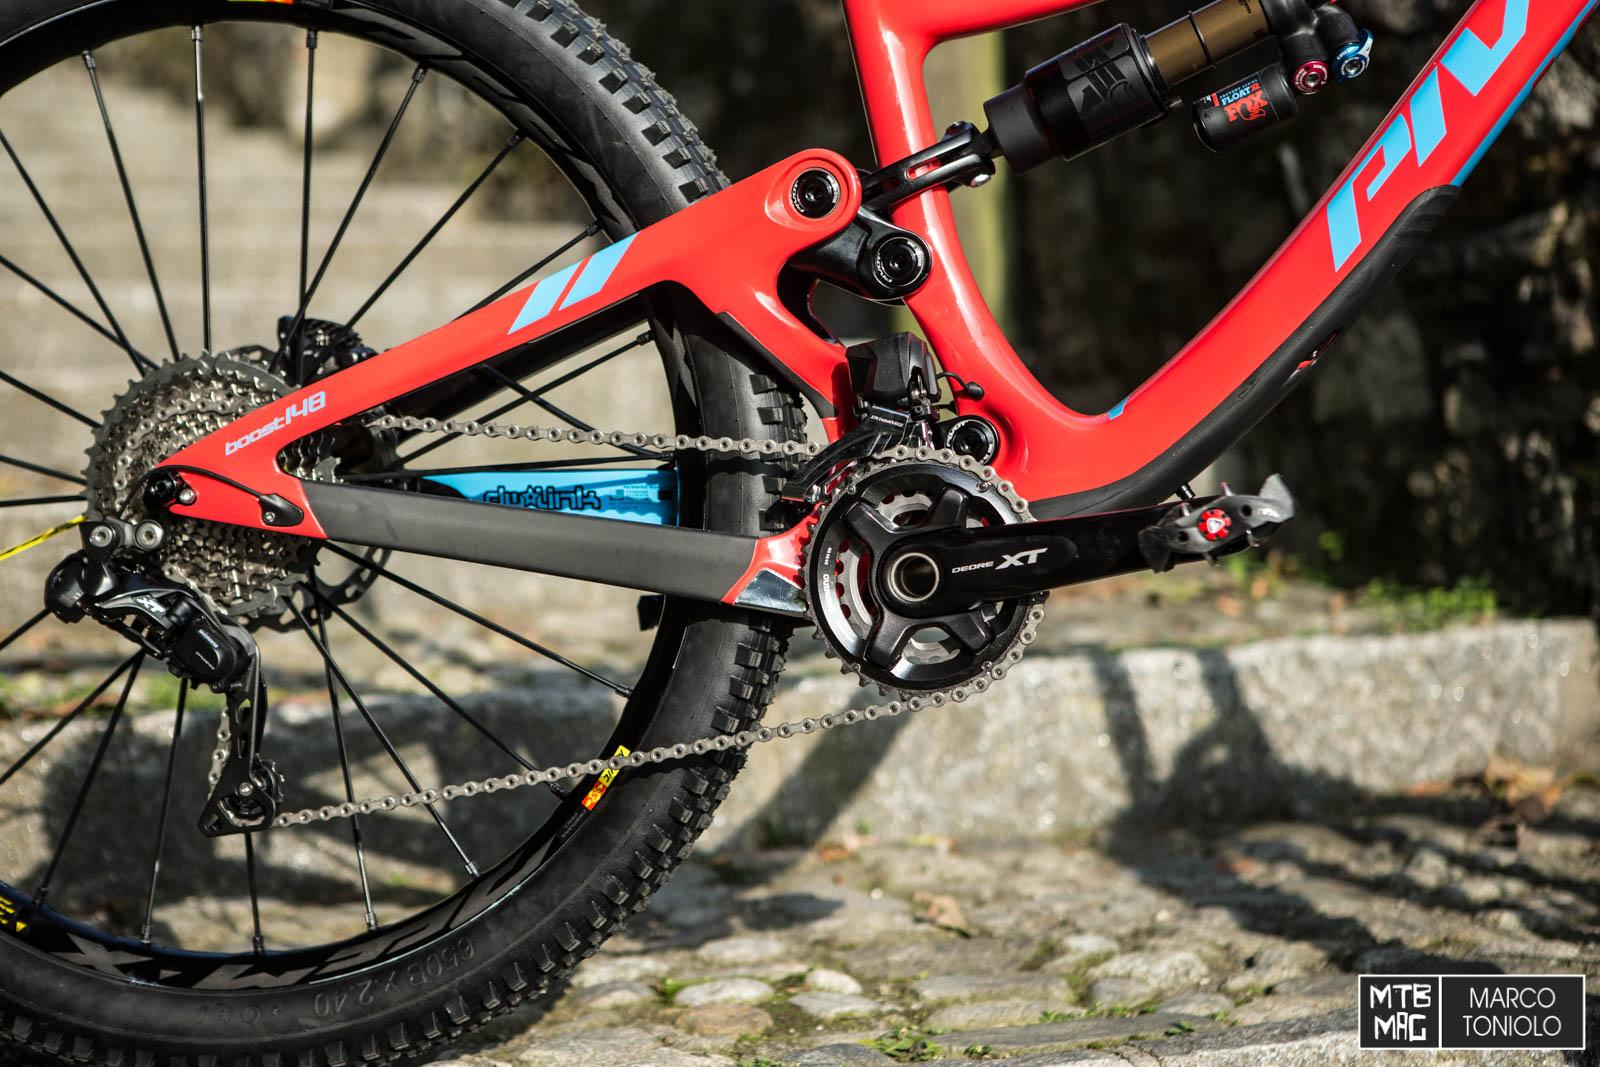 MTB-MAG COM - Mountain Bike Magazine | [Bike check] Pivot